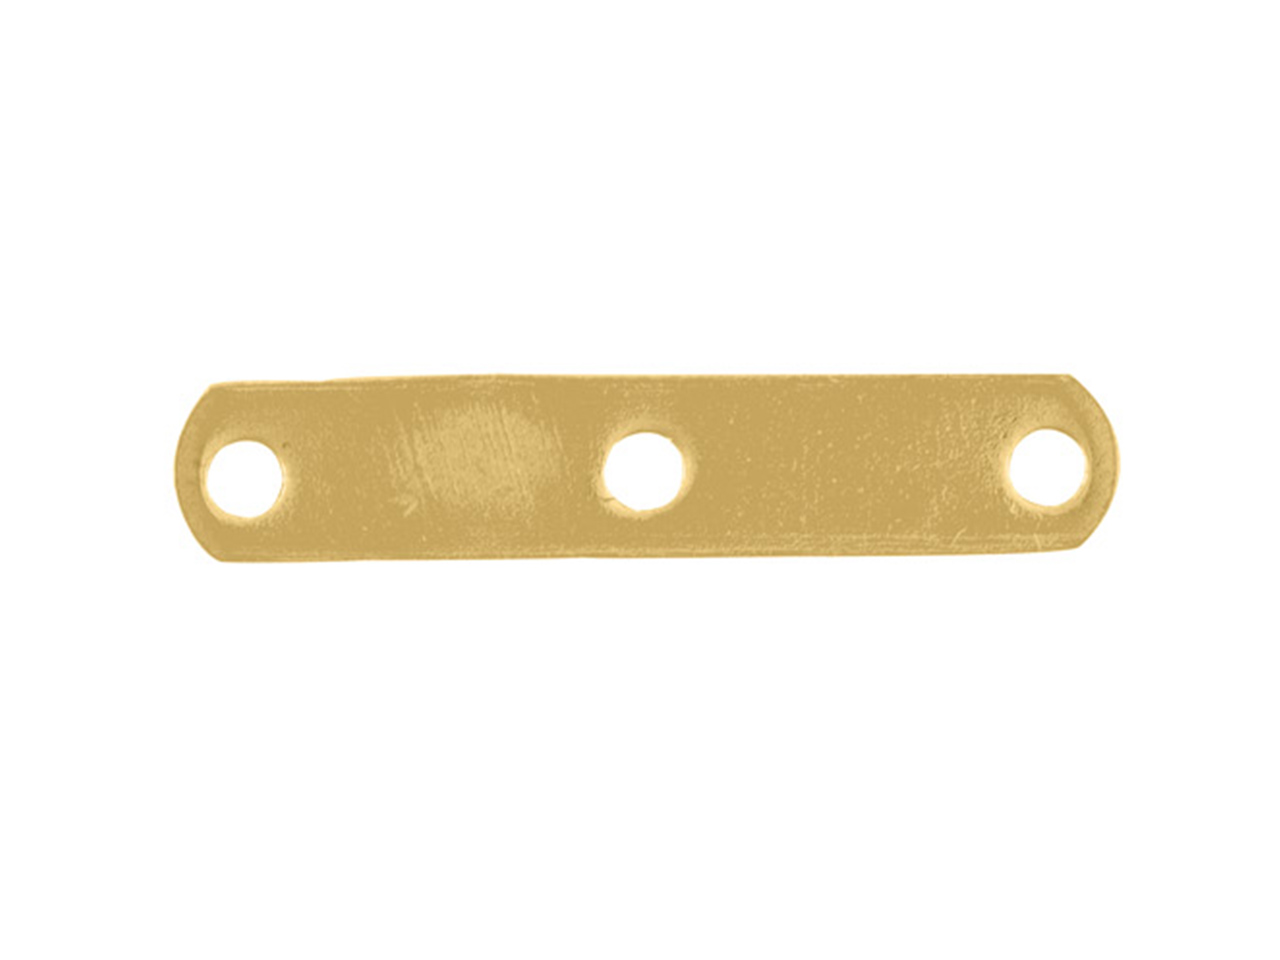 Intercalaire barrette 3 trous 15 mm, Or jaune 18k, n° 3